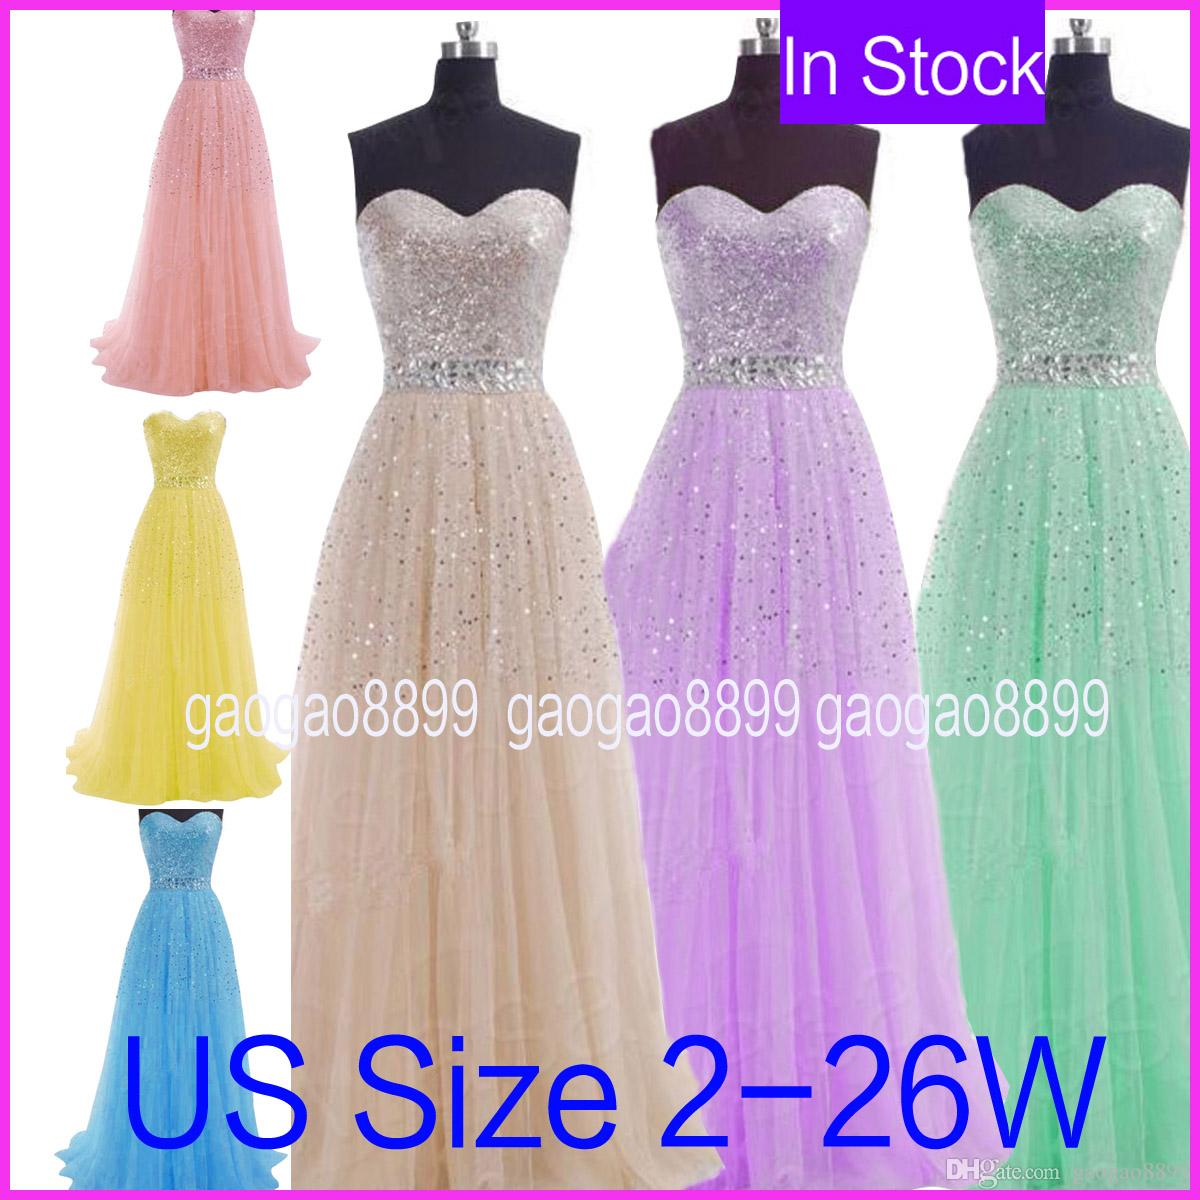 Lilac grey bridesmaid dresses online lilac grey bridesmaid sweetheart sequins tulle evening prom dresses long champagne mint pink blue grey lilac beads bridesmaid party gowns 2015 in stock cheap ombrellifo Images